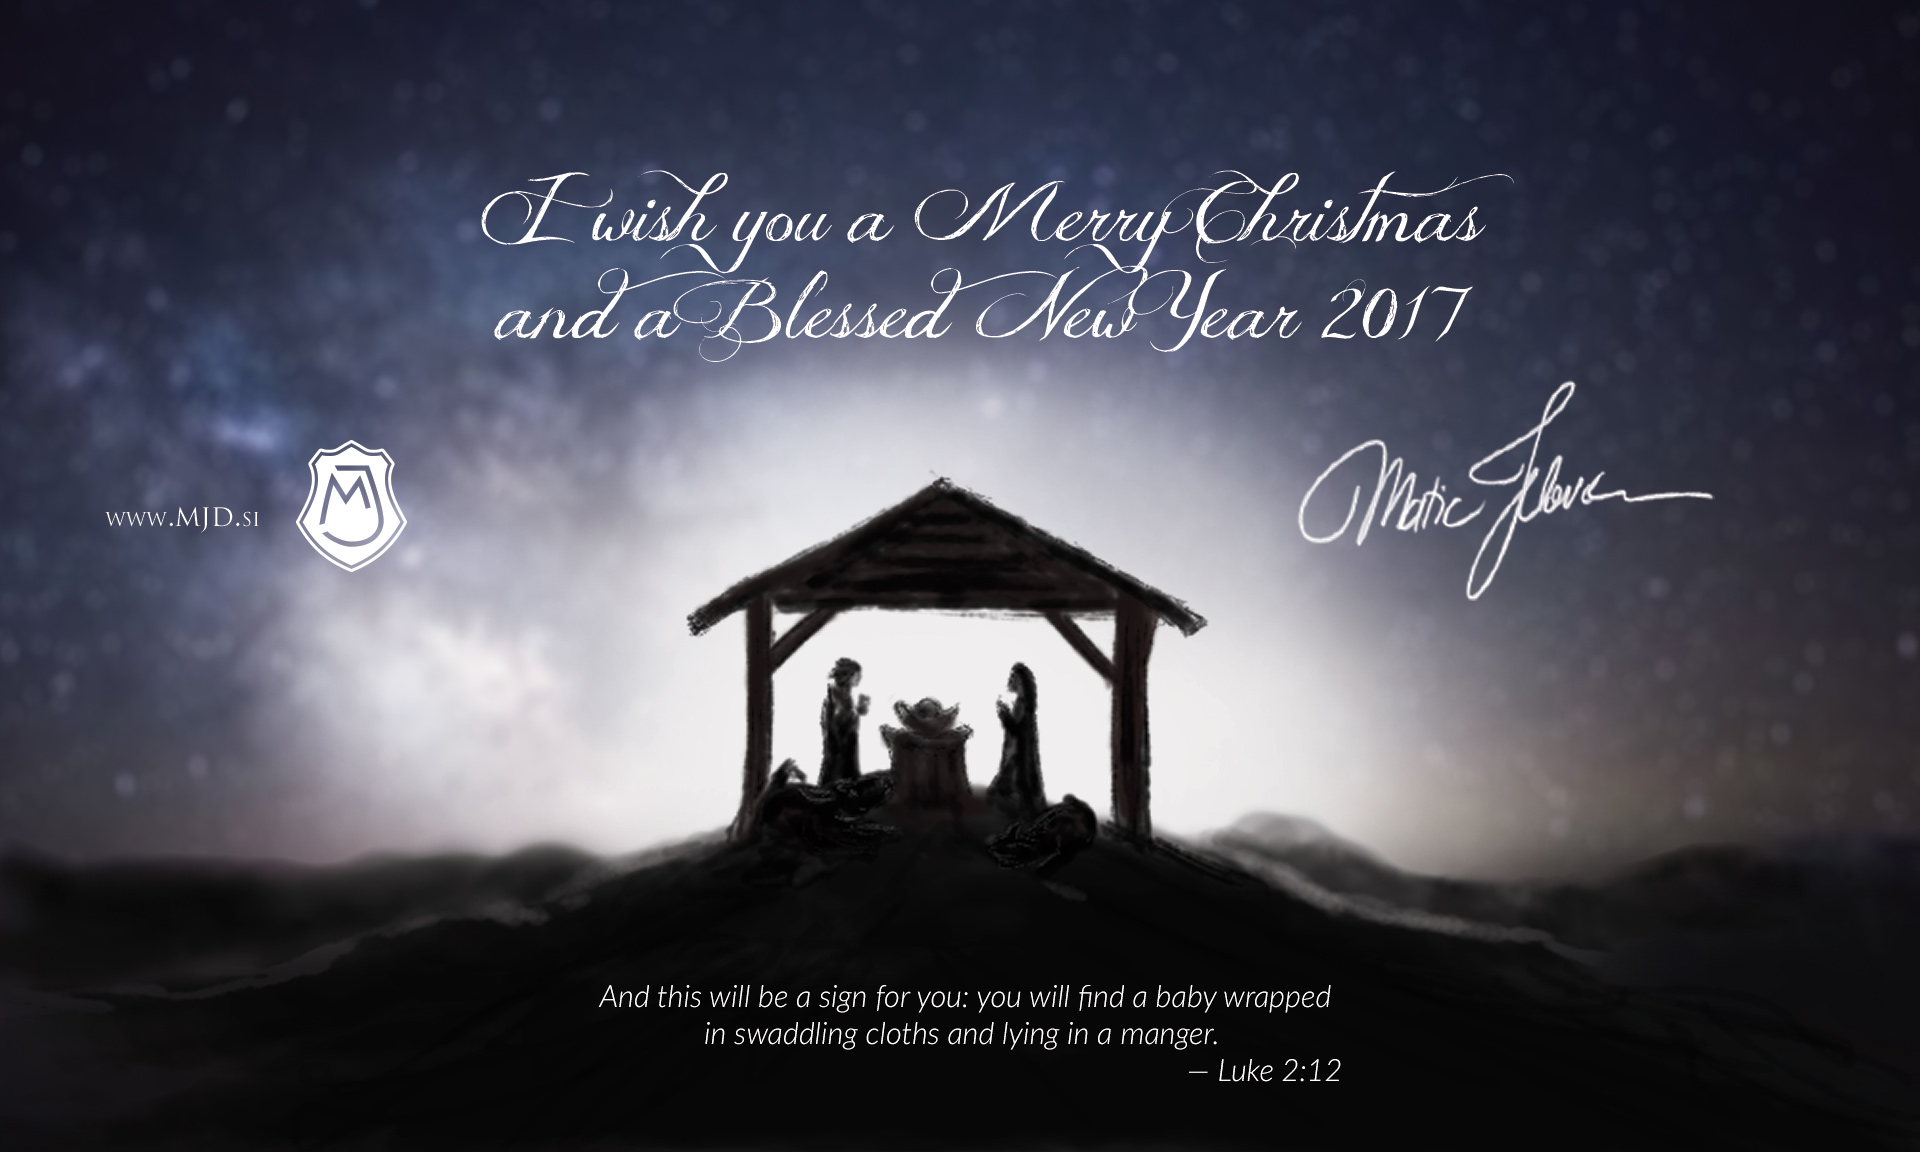 mjd Christmas EN - Merry Christmas and a Blessed New Year 2017